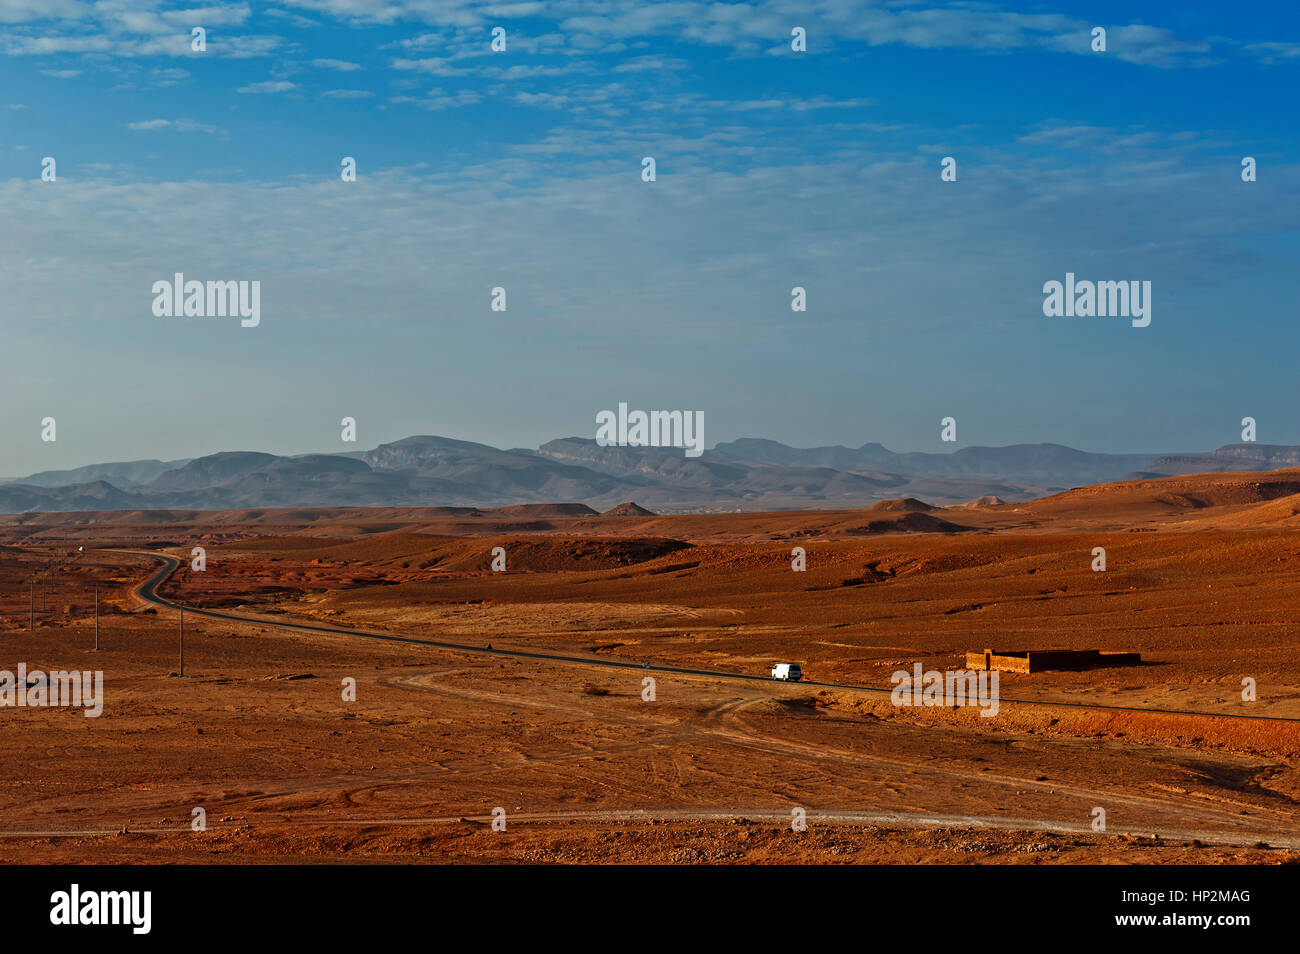 The road through the Moroccan desert in the province of Ouarzazate. Lonely road in Morocco. - Stock Image